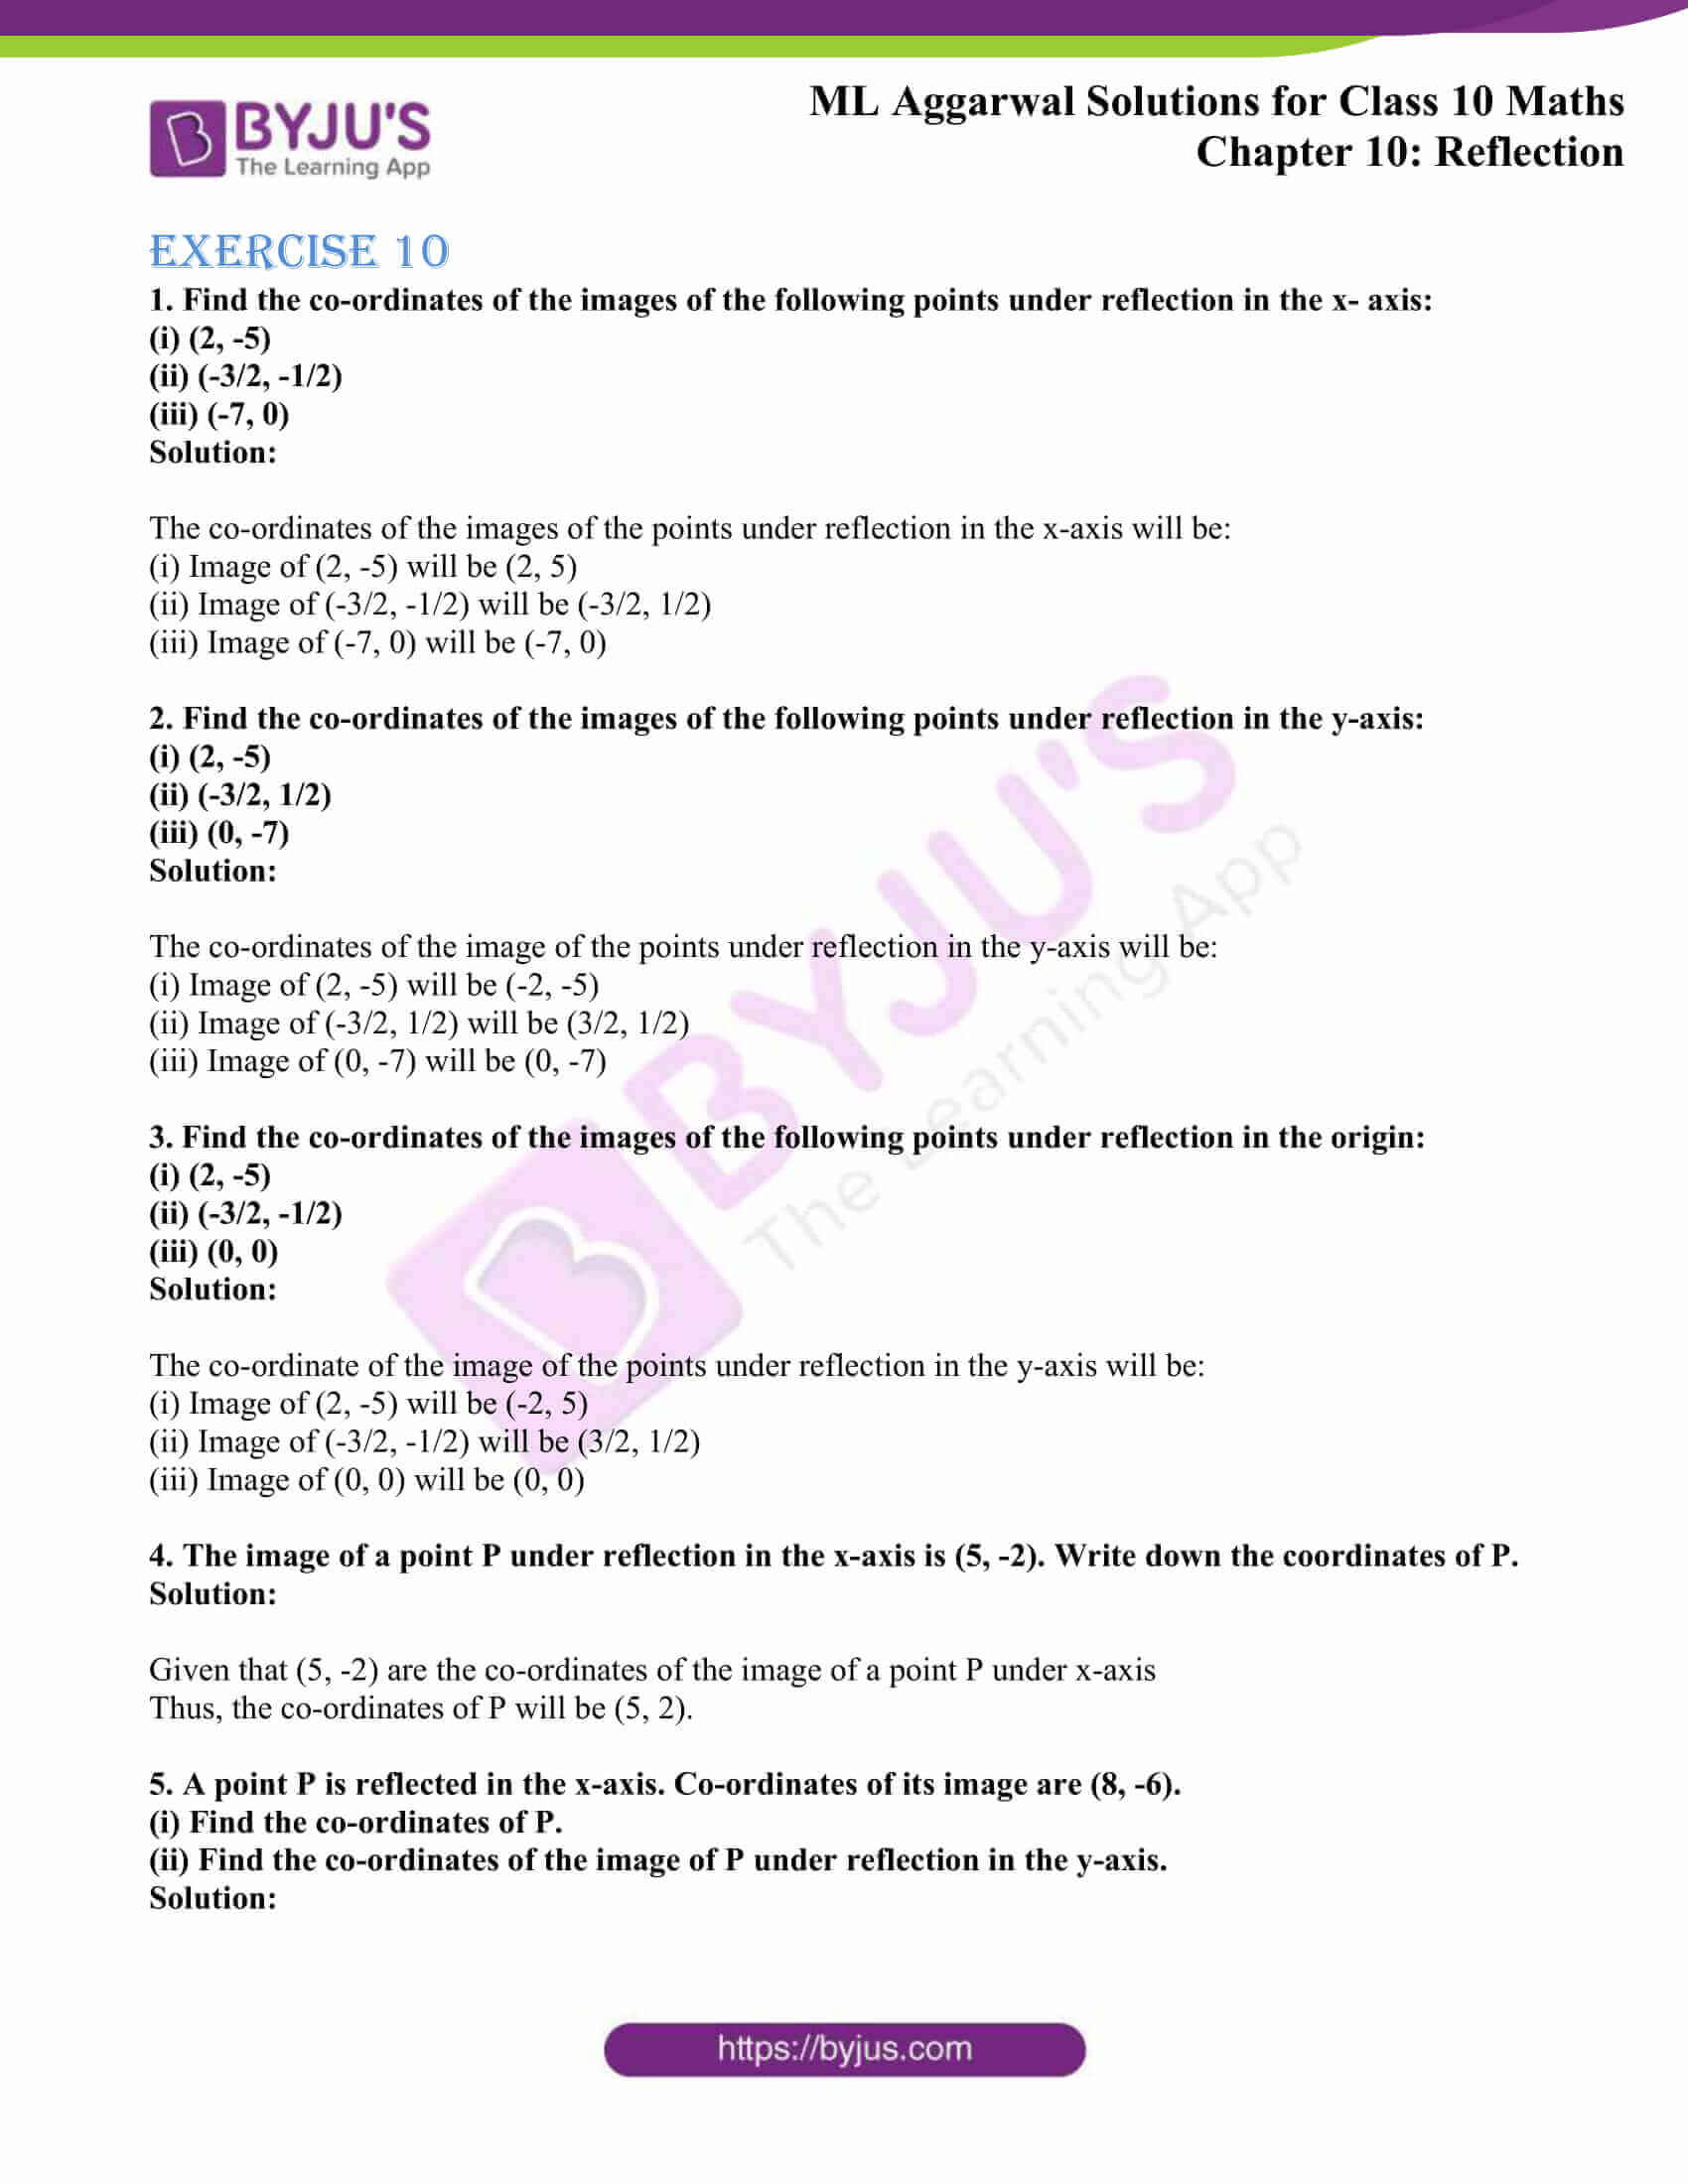 ml aggarwal solutions class 10 maths chapter 10 01